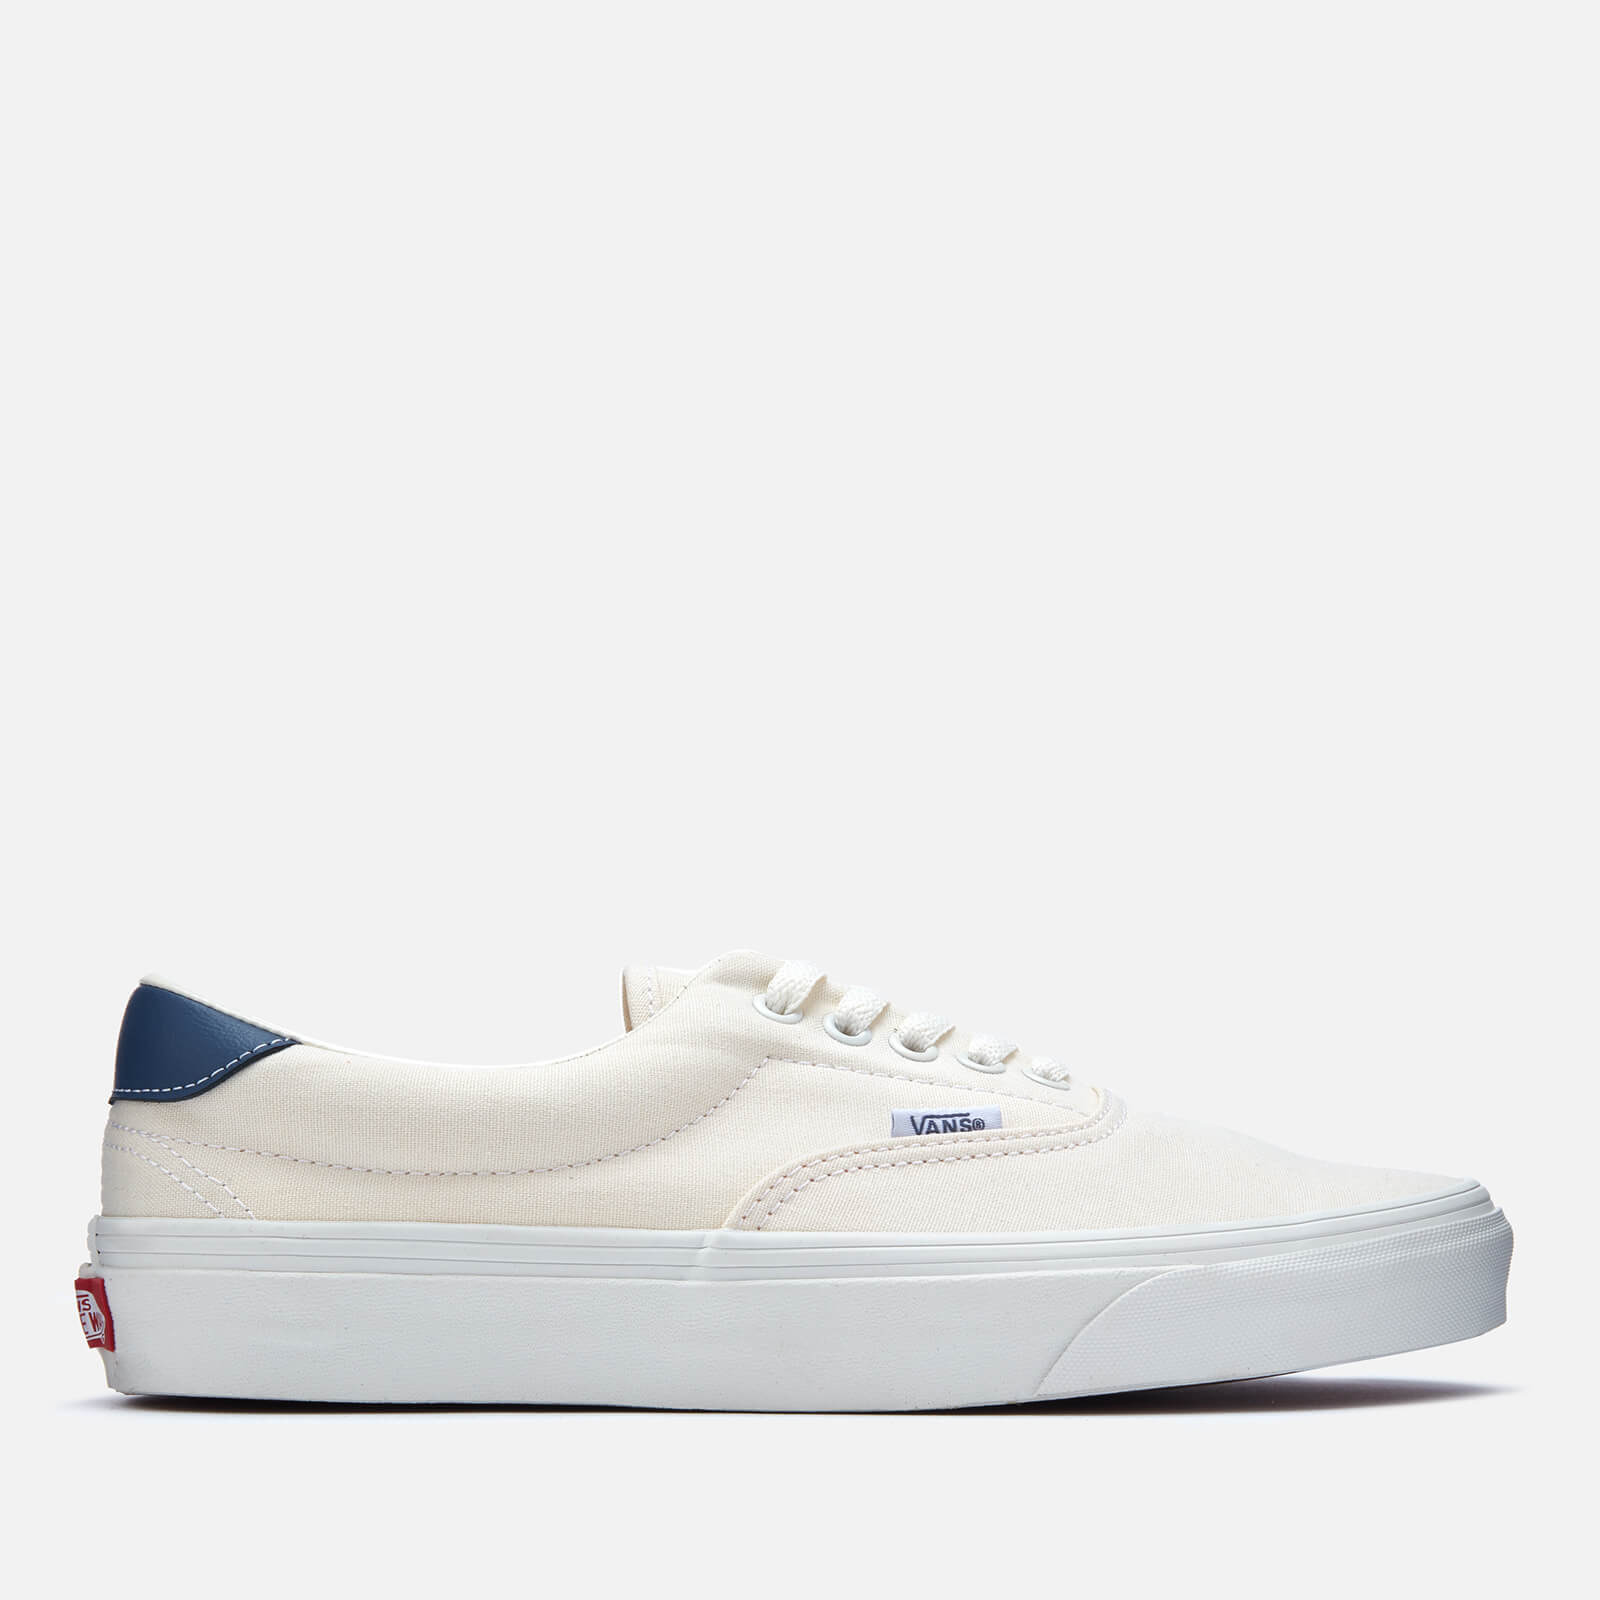 603609846870ce Vans Men s Era 59 Trainers - Vintage White Vintage Indigo Mens Footwear